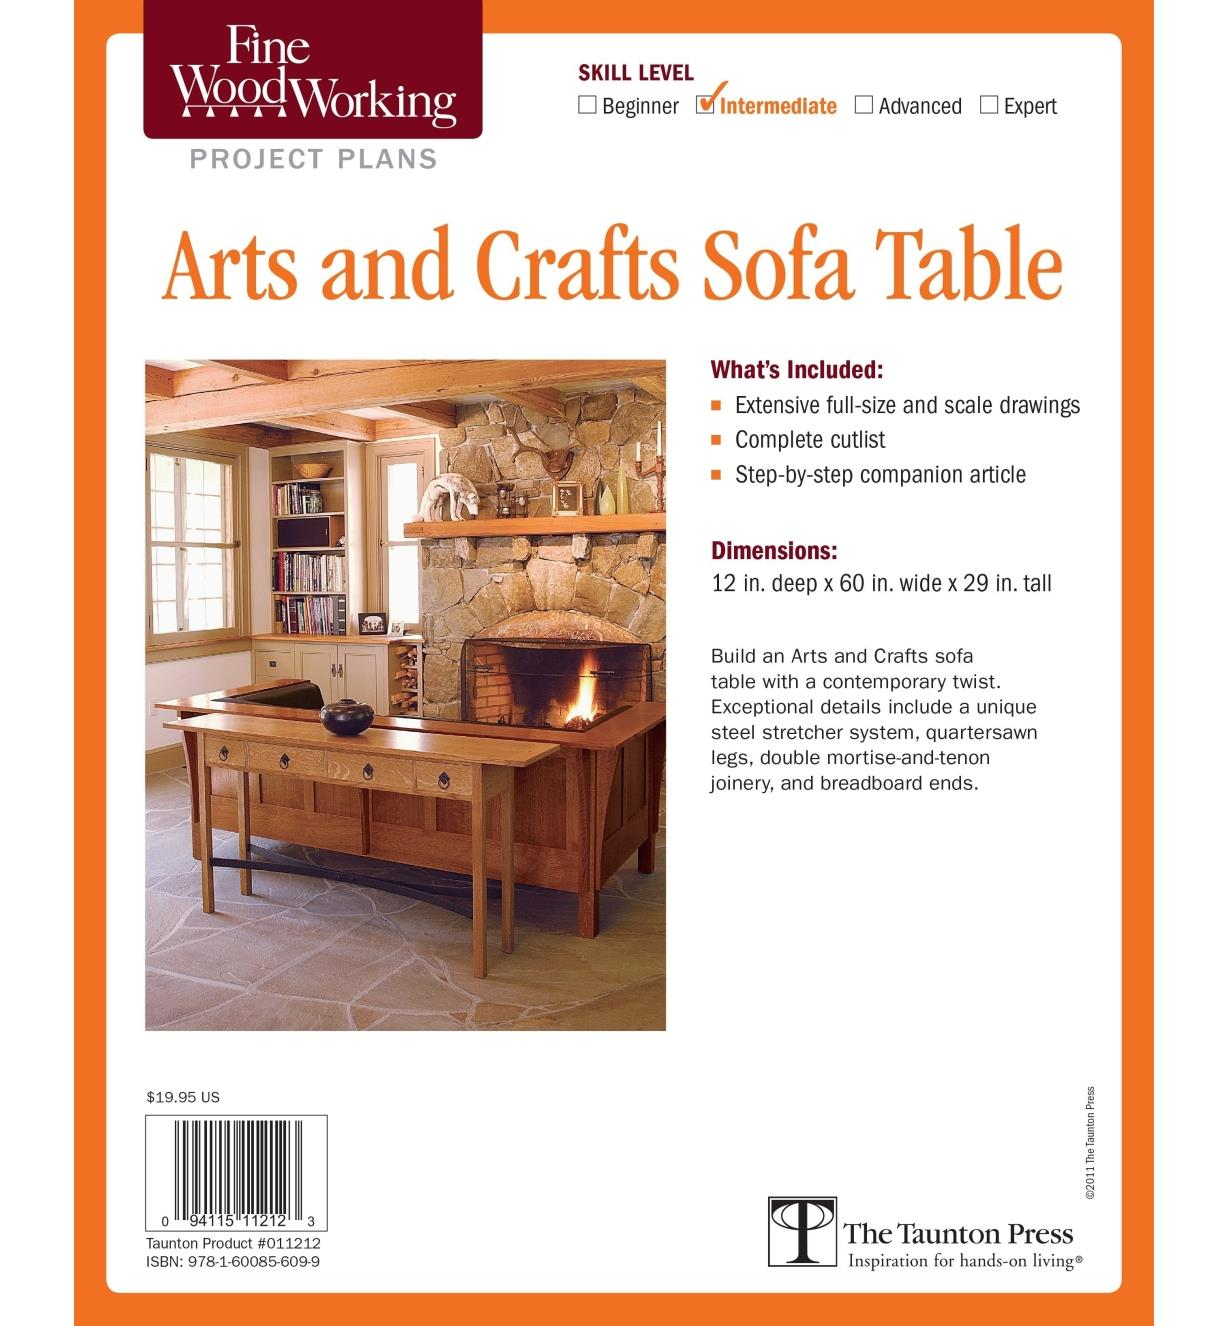 73L2527 - Arts and Crafts Sofa Table Plan